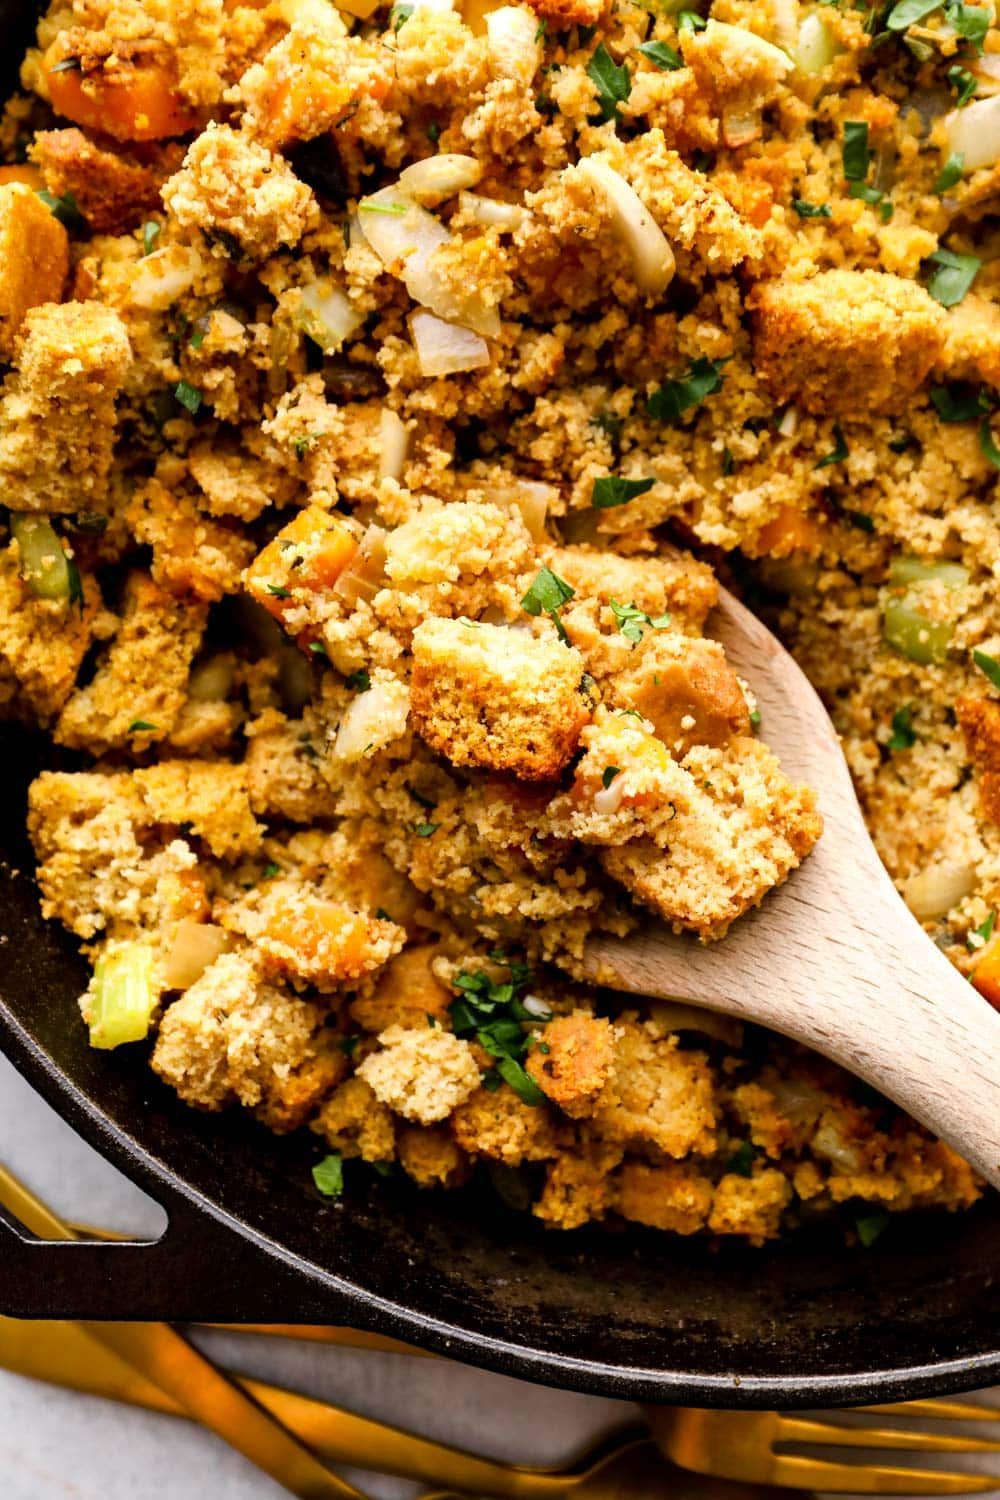 Gluten Free Cornbread Stuffing being spooned out of the pan.